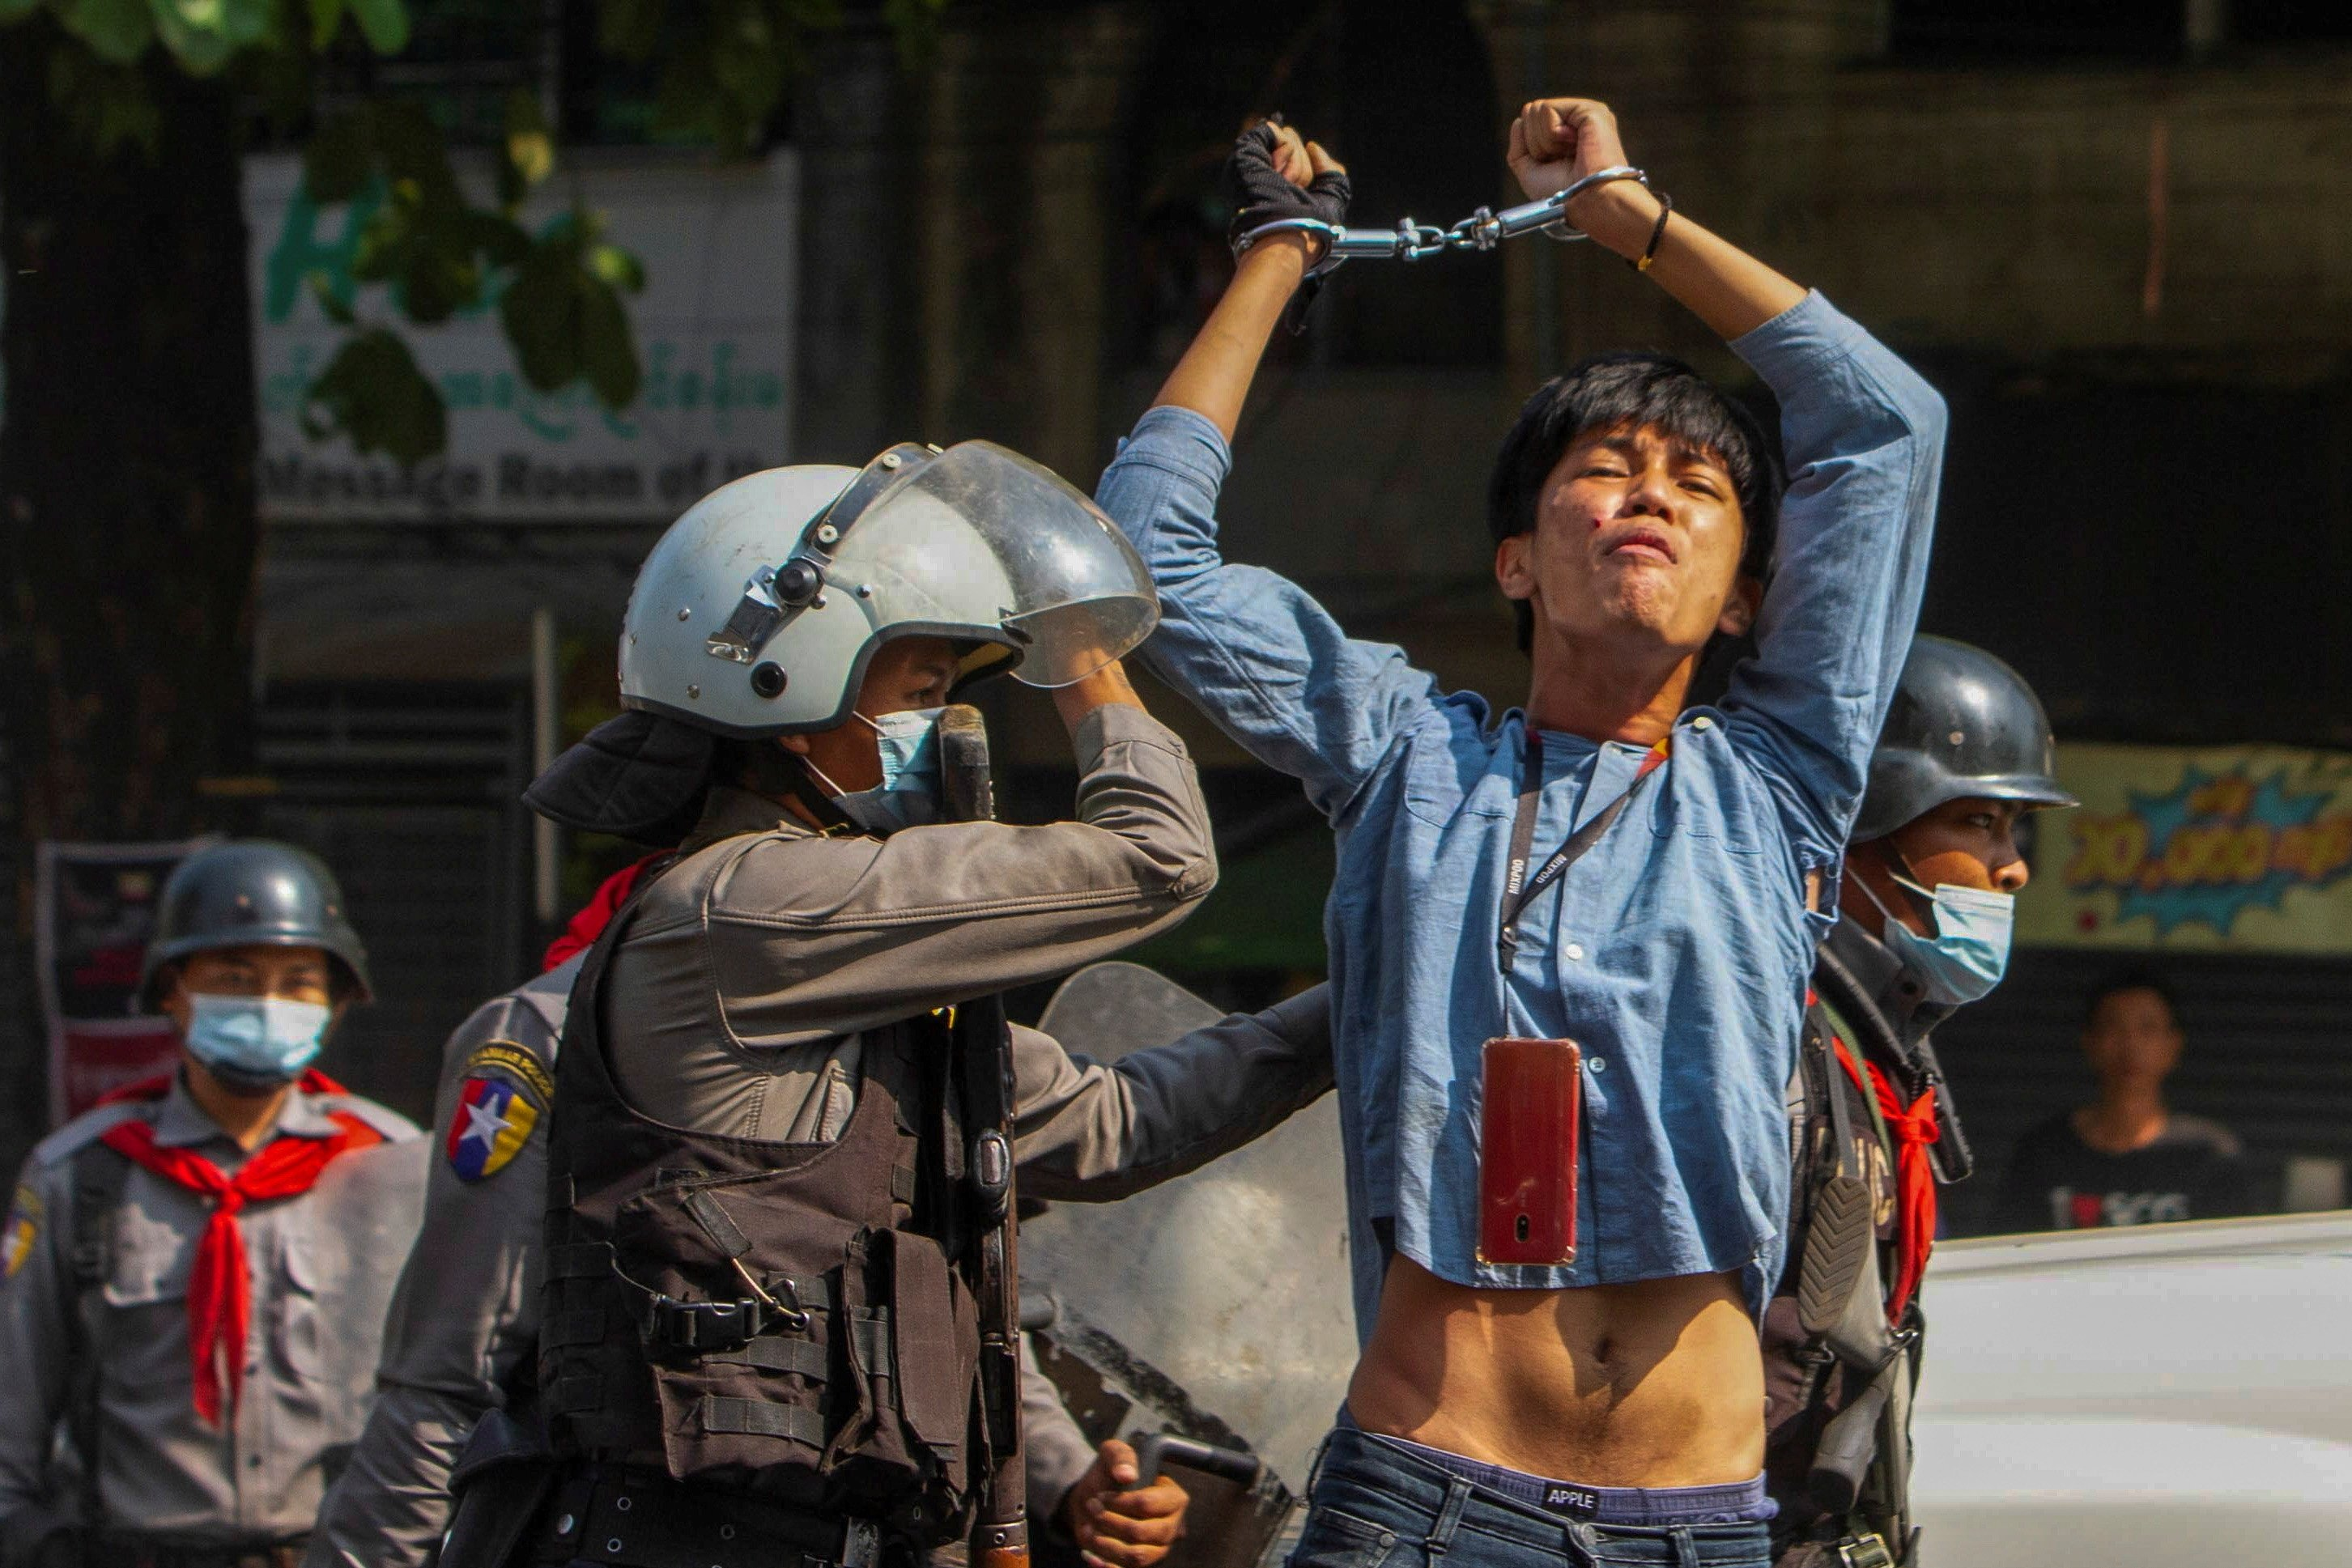 A pro-democracy protester is detained by riot police officers during a rally against the military coup in Yangon, Myanmar, Feb. 27, 2021. (Photo: Reuters/Stringer)